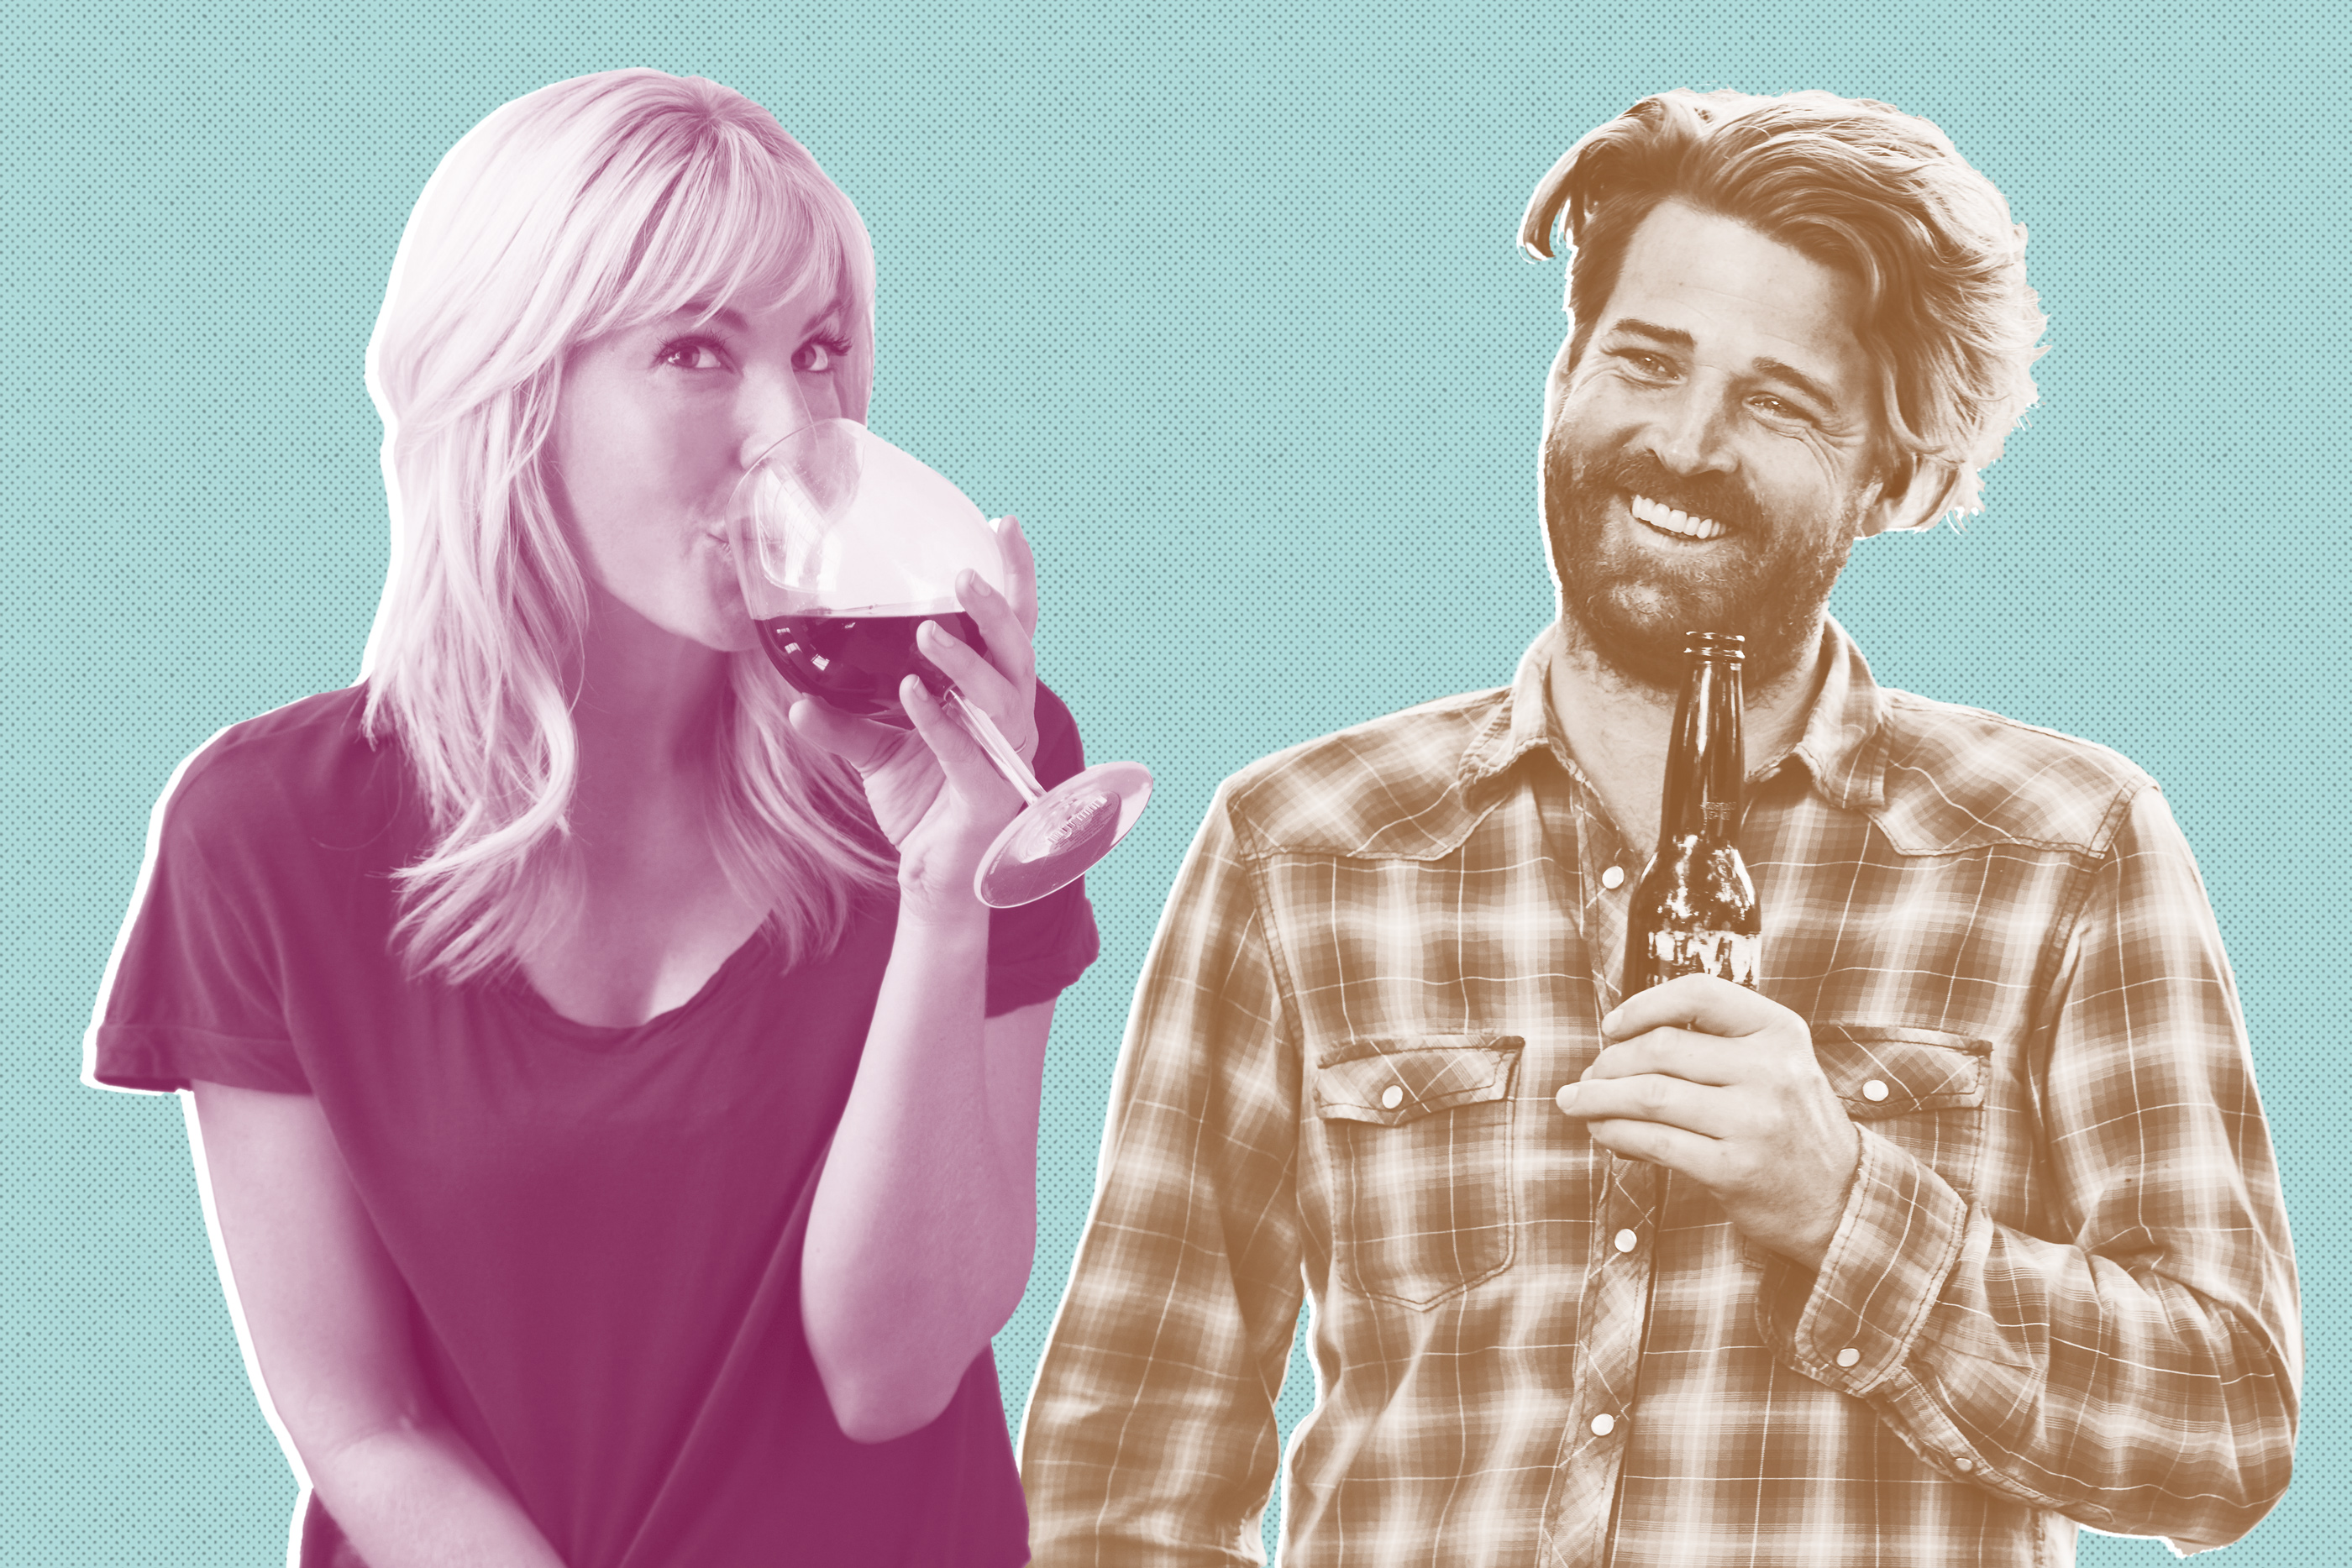 illustration of woman drinking wine and man drinking beer